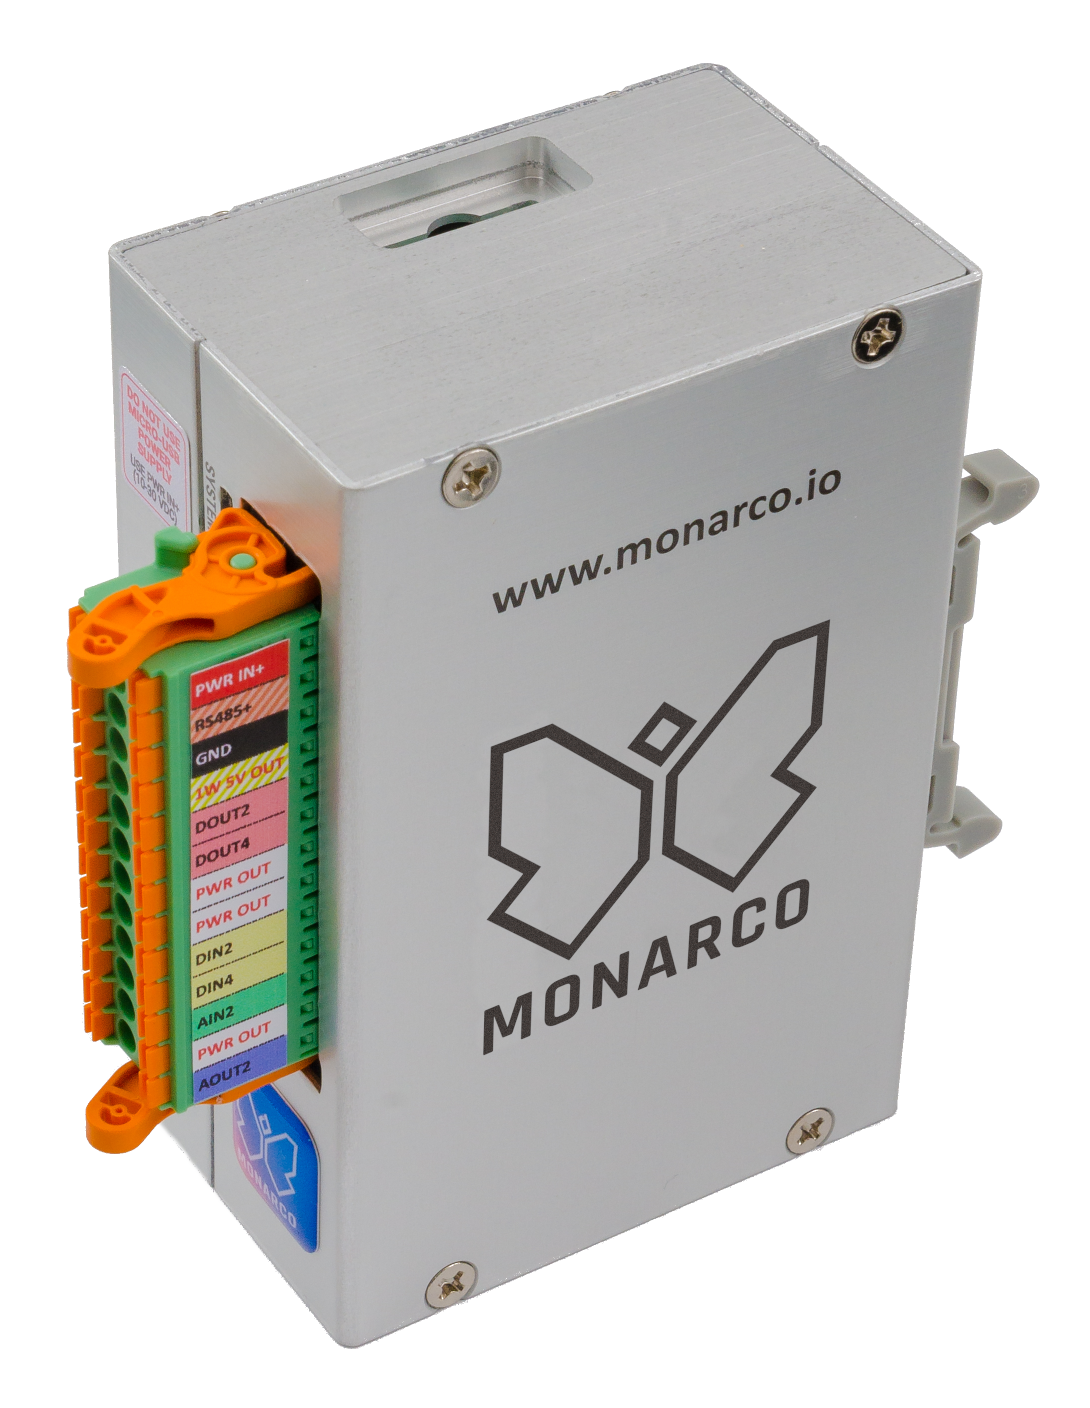 Monarco HAT - Analog and digital I/O, RS-485 and 1-Wire bus